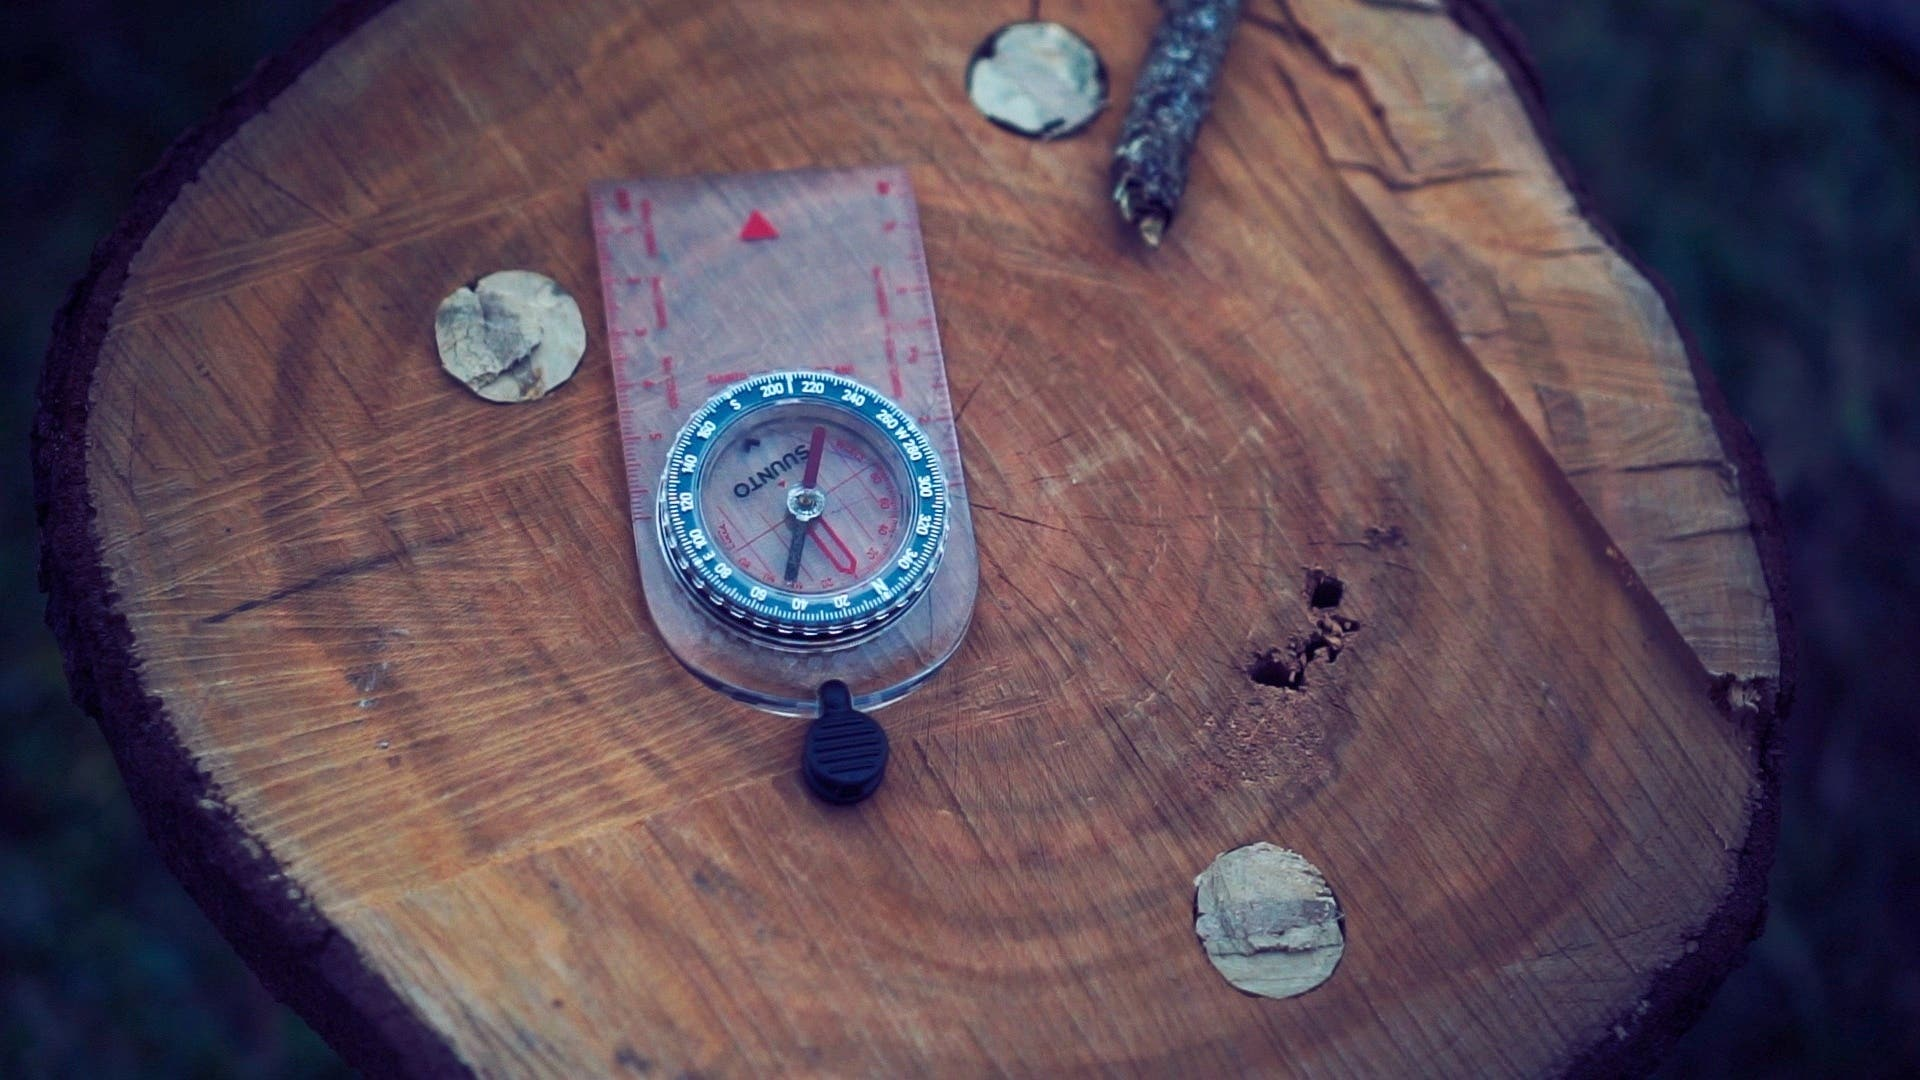 NO MAP NAVIGATION : How to find your way back with just a compass.